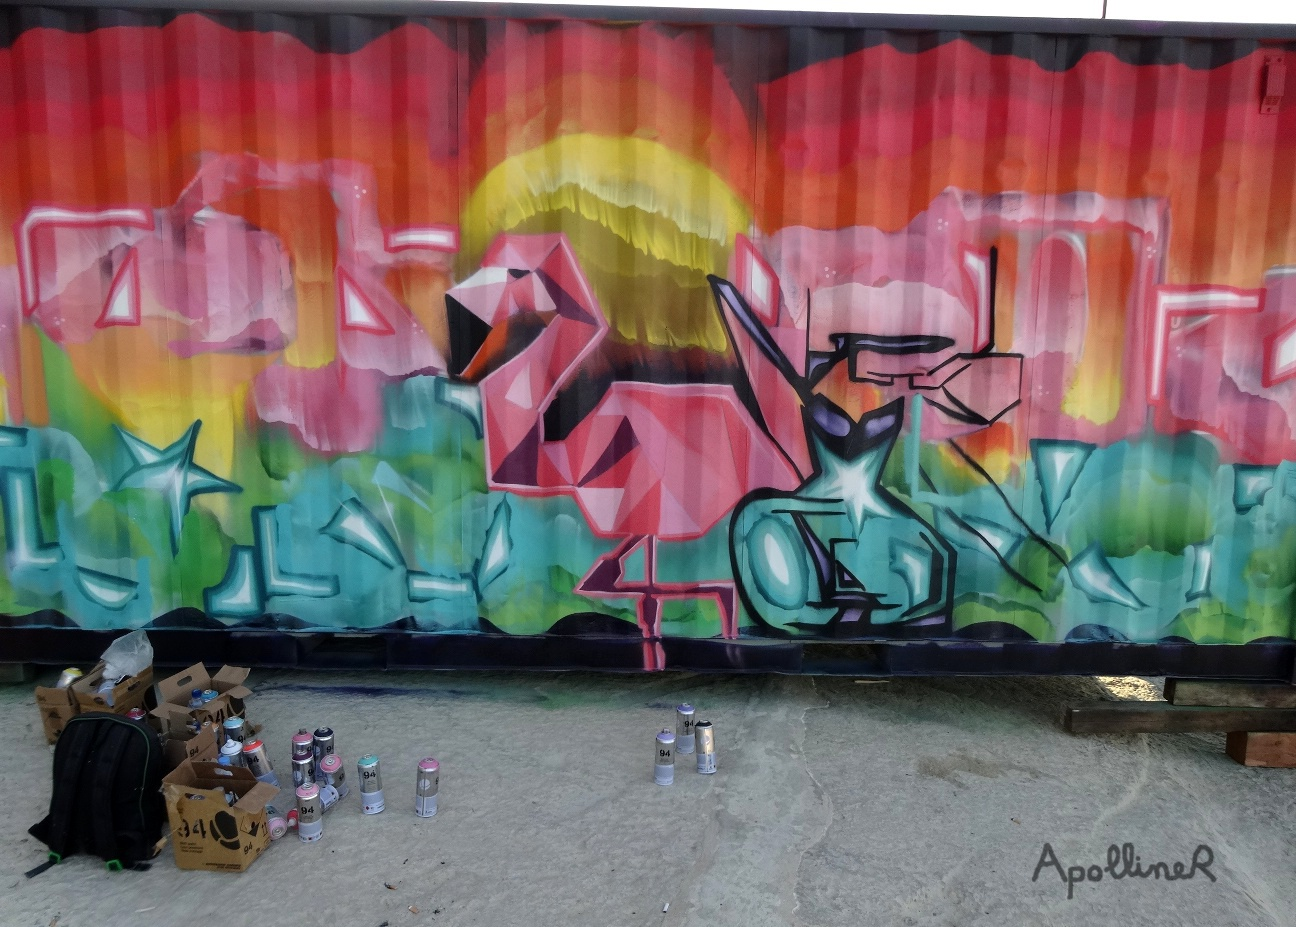 Sliema Street Art Festival in Malta: greater flamingo graffiti